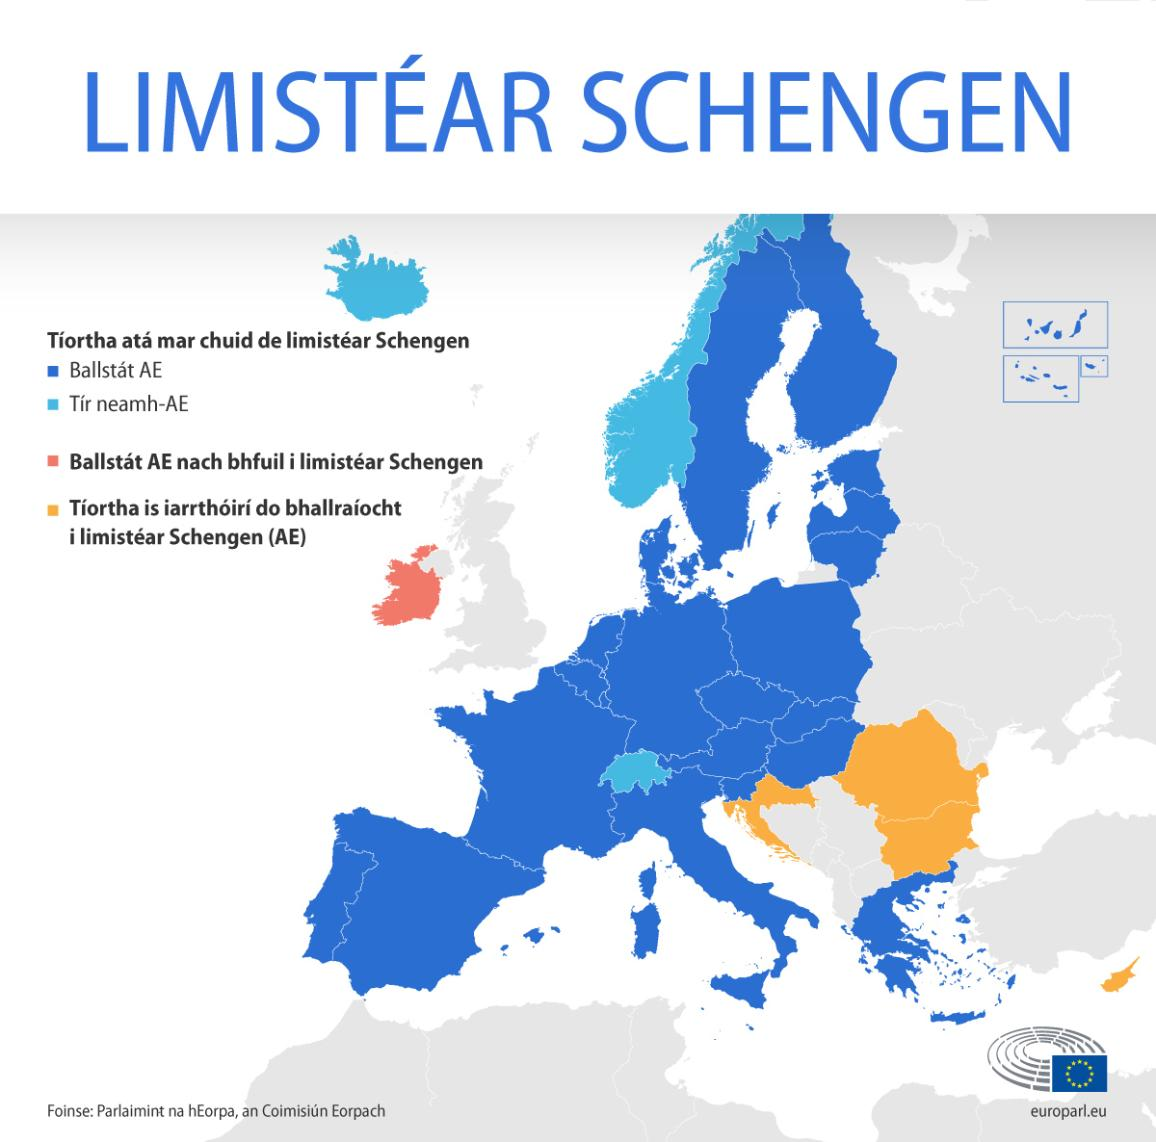 Schengen zone map indicating current EU and non-EU members, candidate countries and EU country outside the Schengen area